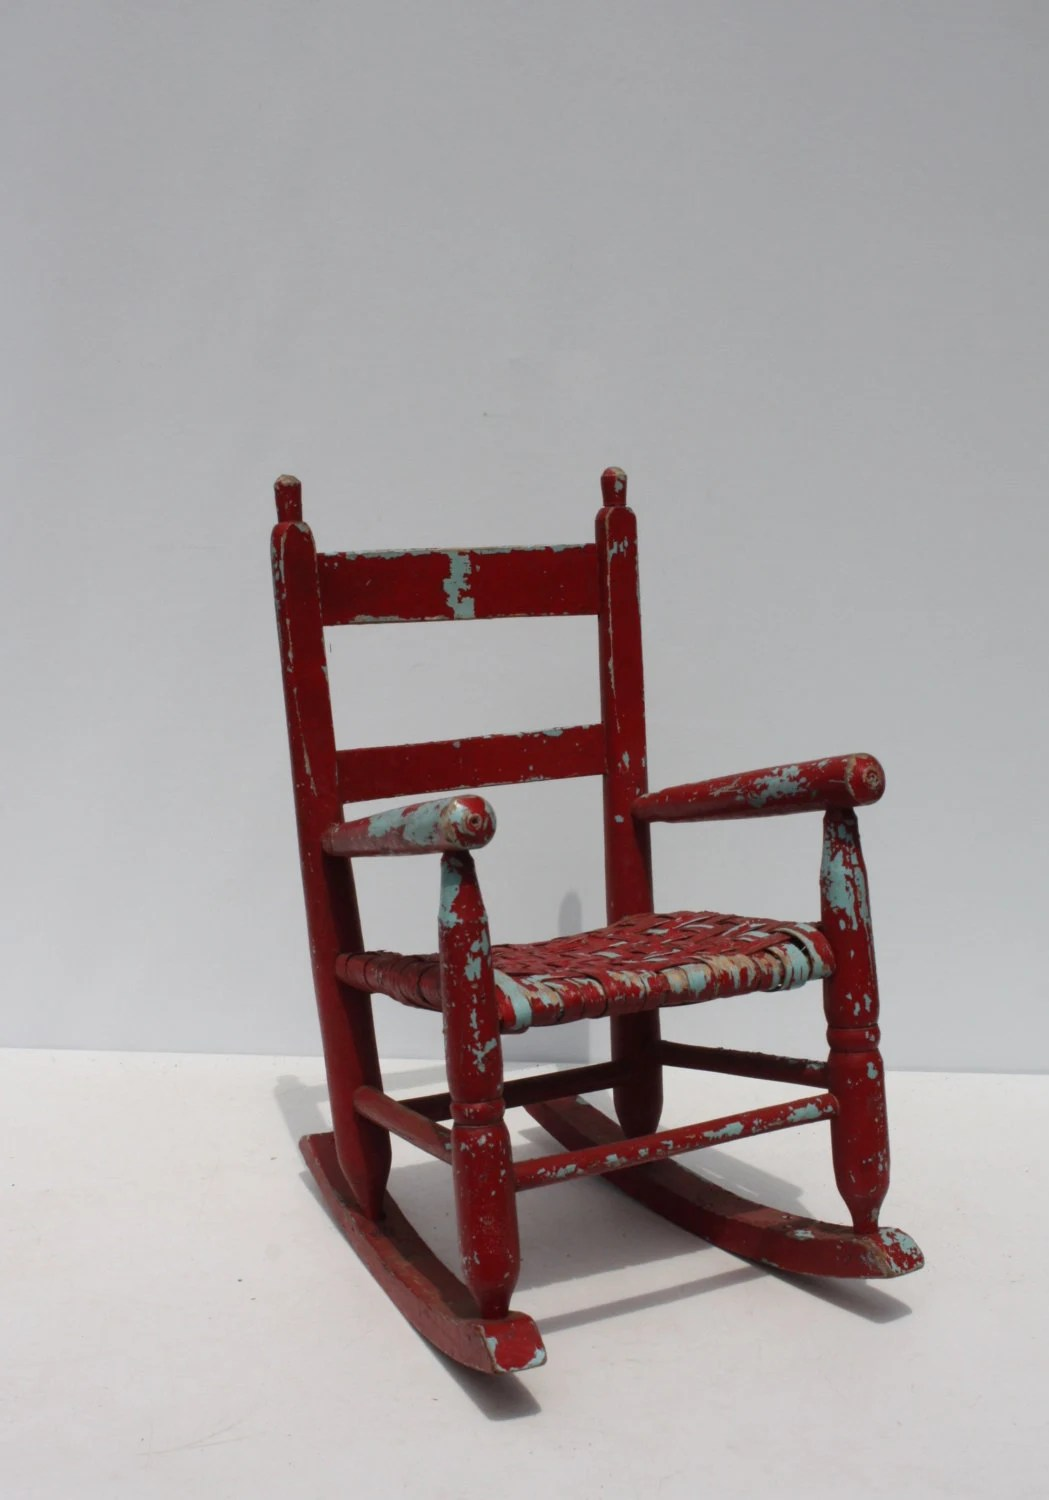 antique wooden rocking chairs kohls dining vintage child 39s chair wood woven seat red